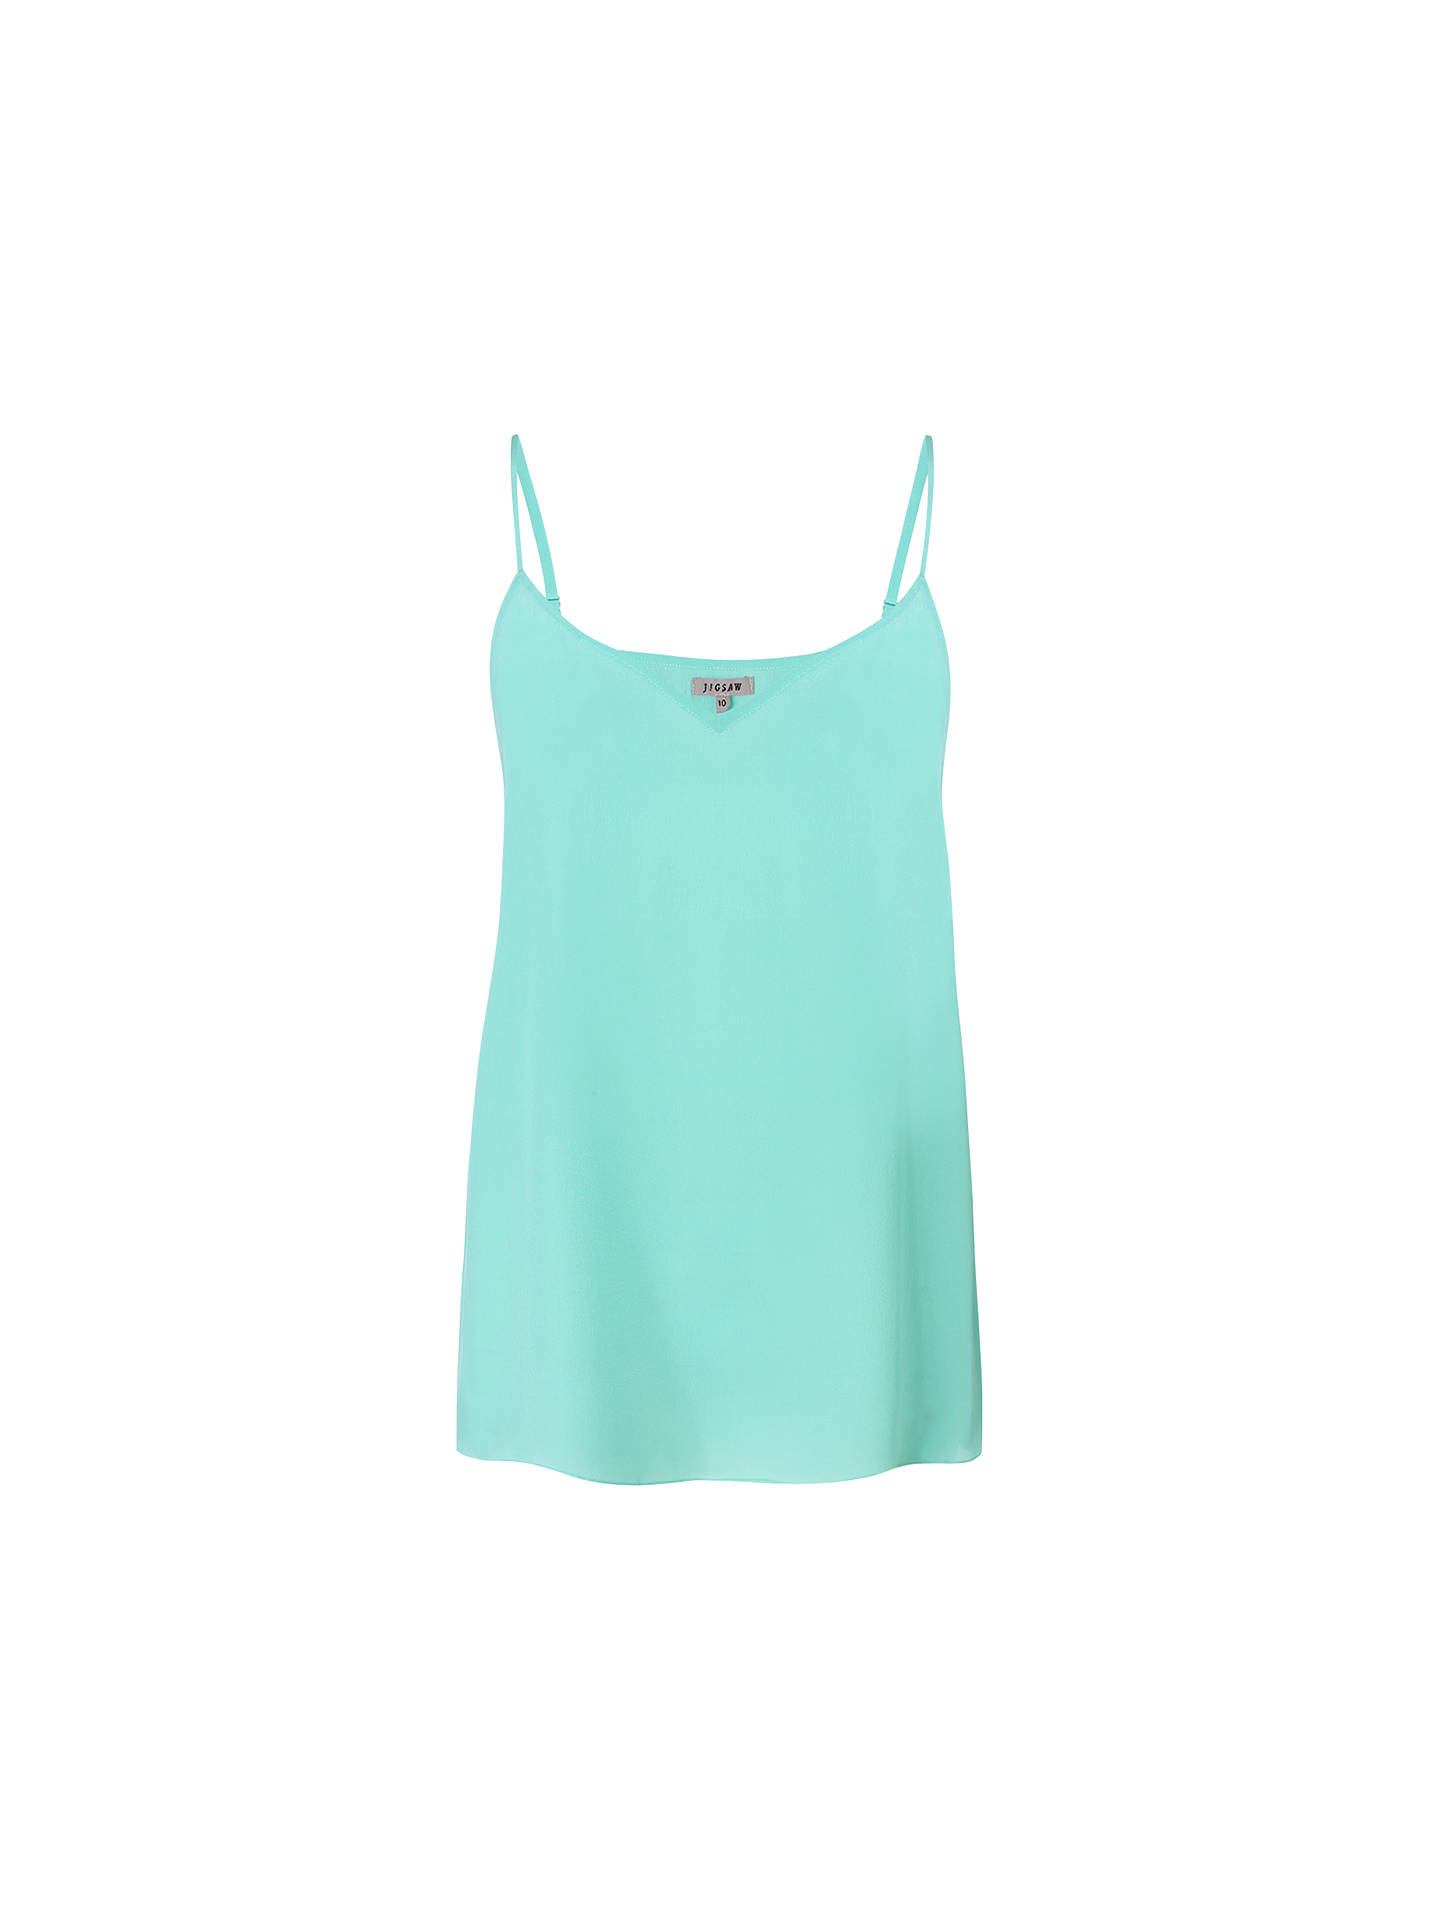 BuyJigsaw Silk Camisole Top, Mint, 8 Online at johnlewis.com